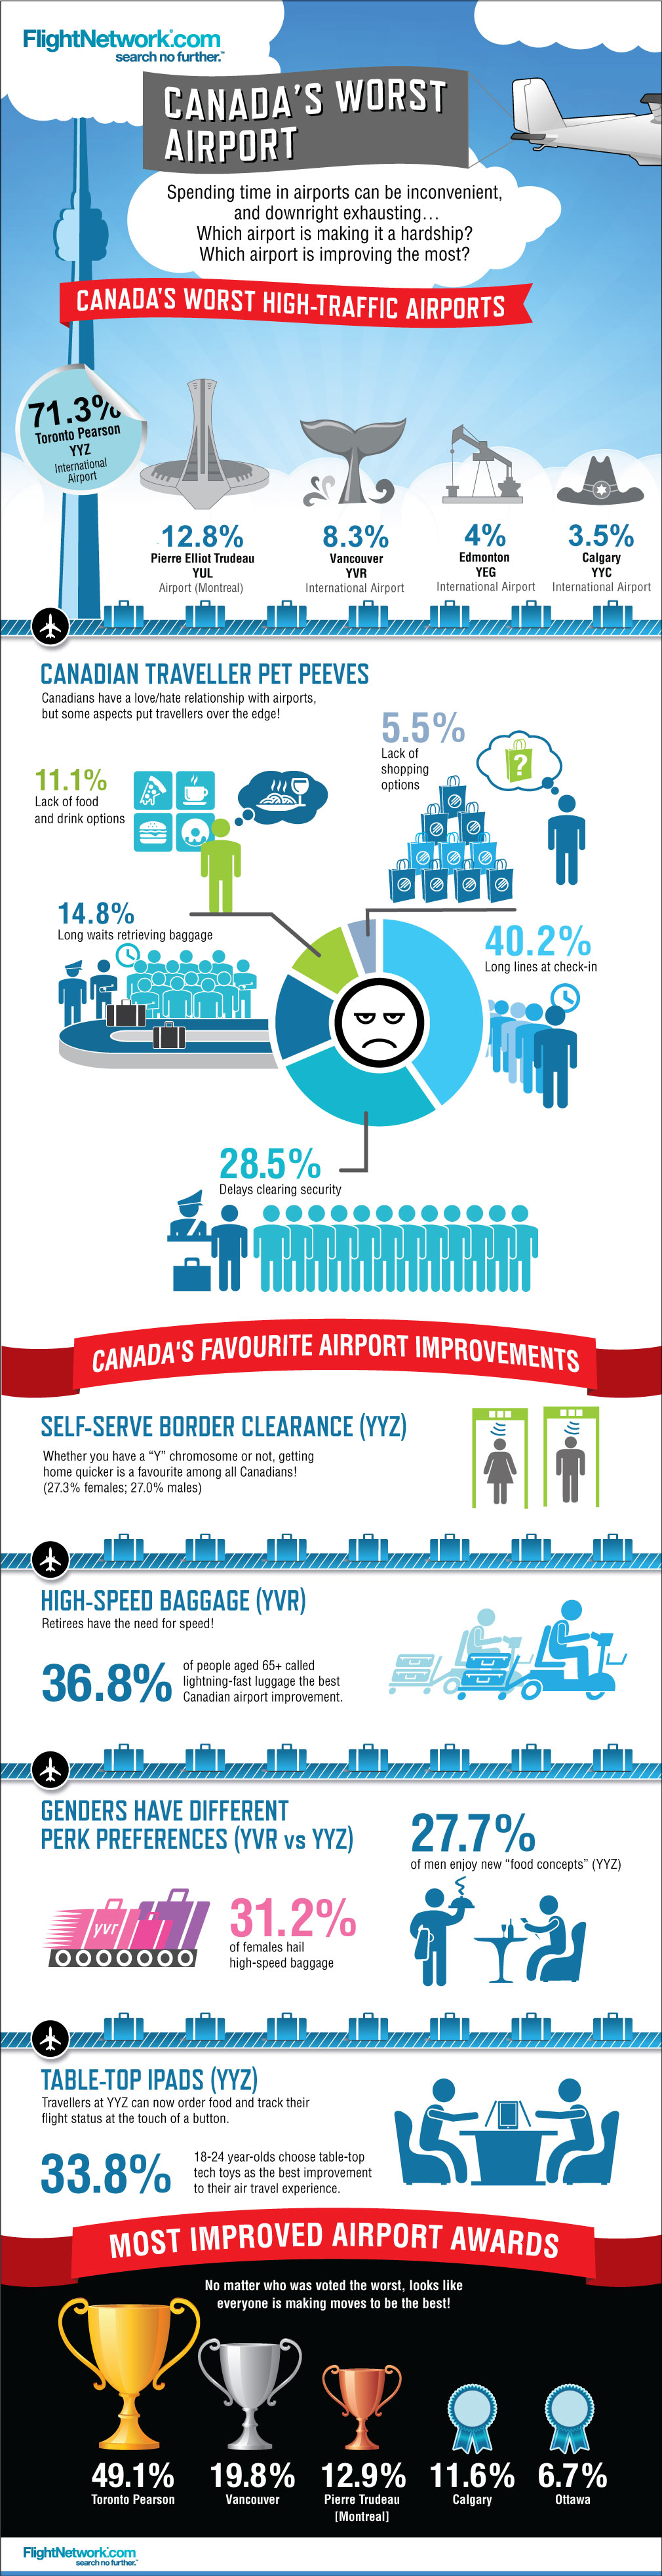 Canada's Worst Airports 2013